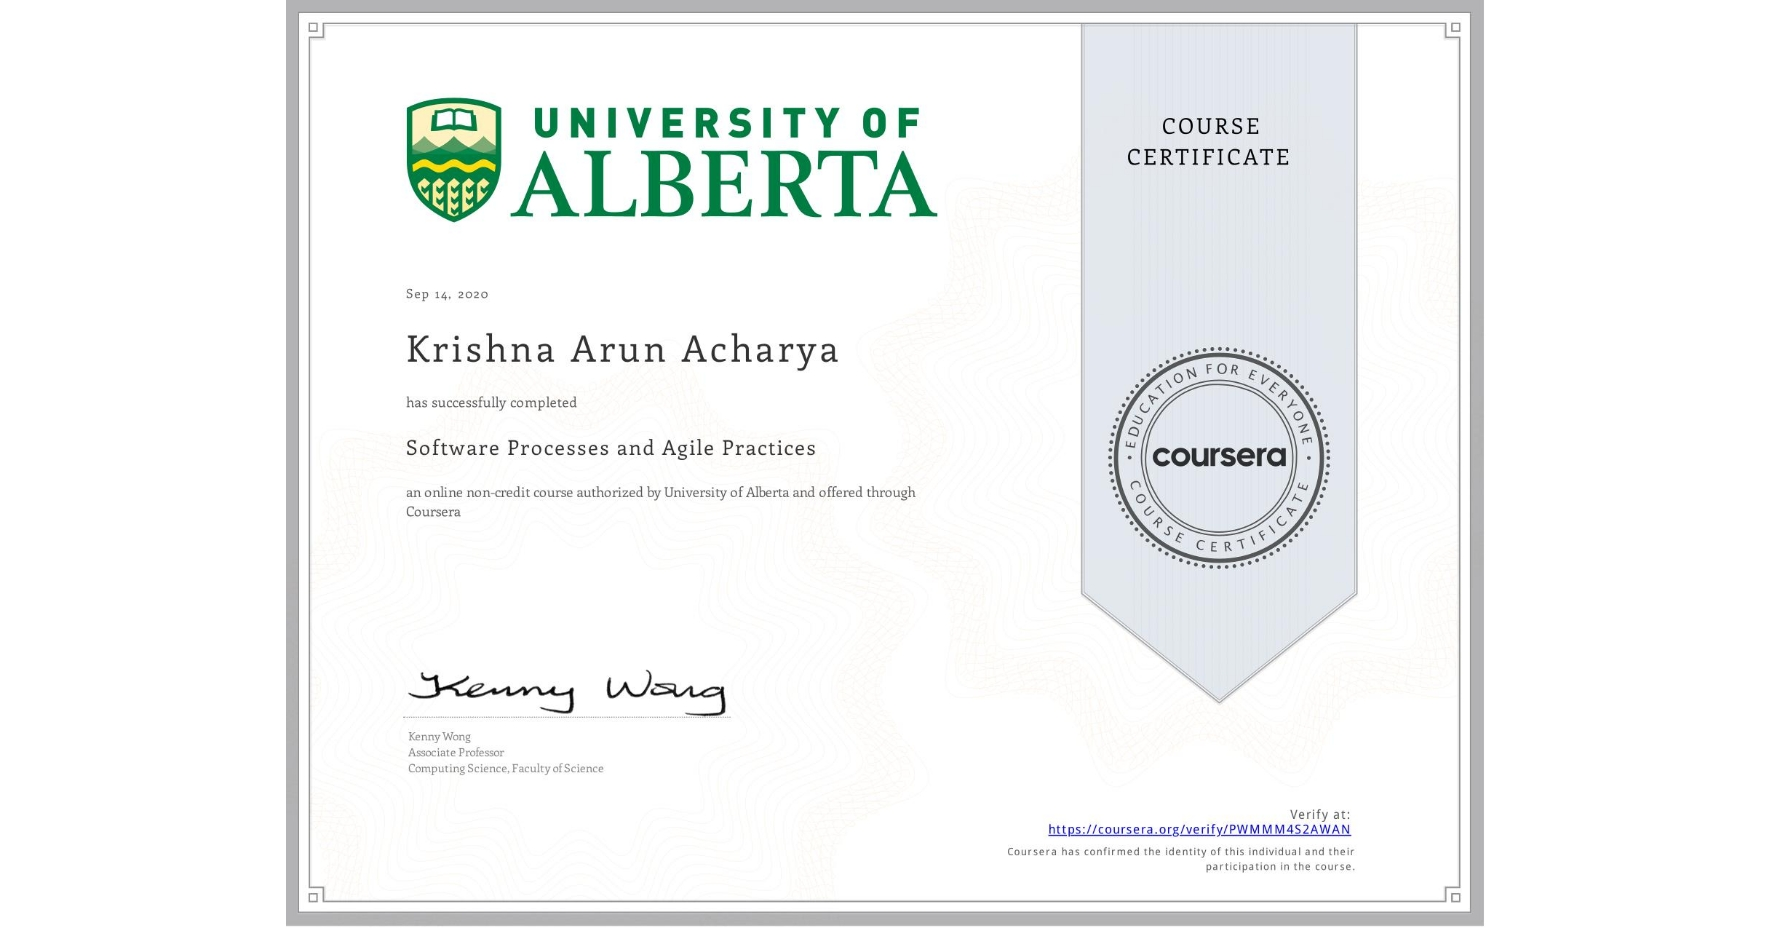 View certificate for Krishna Arun Acharya, Software Processes and Agile Practices, an online non-credit course authorized by University of Alberta and offered through Coursera